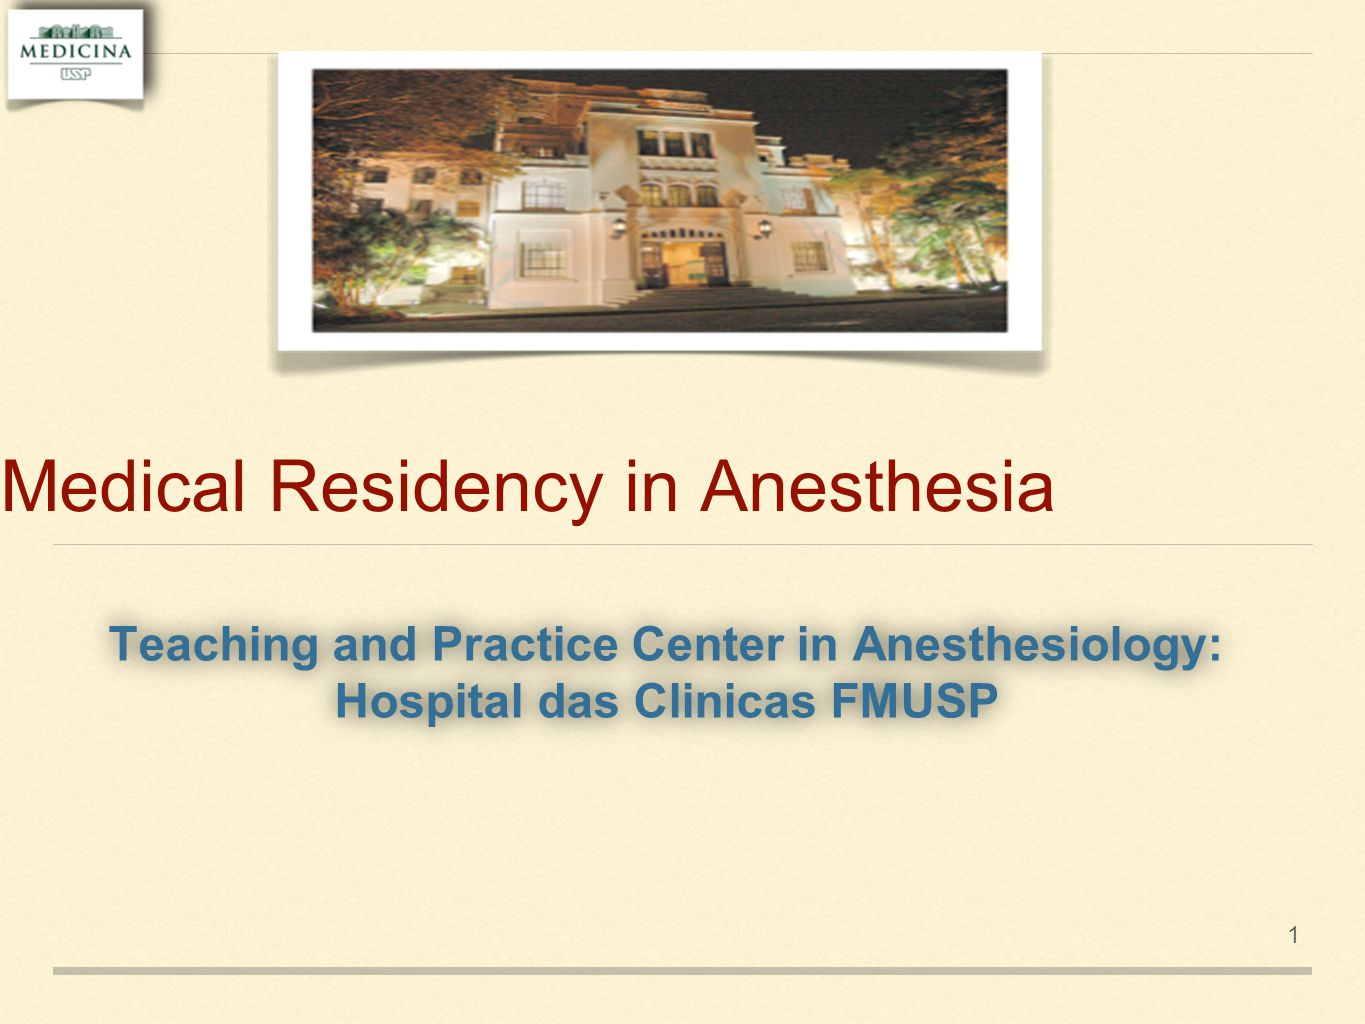 Medical Residency in Anesthesia Teaching and Practice Center in Anesthesiology: Hospital das Clinicas FMUSP Teaching and Practice Center in Anesthesiology: Hospital das Clinicas FMUSP 1